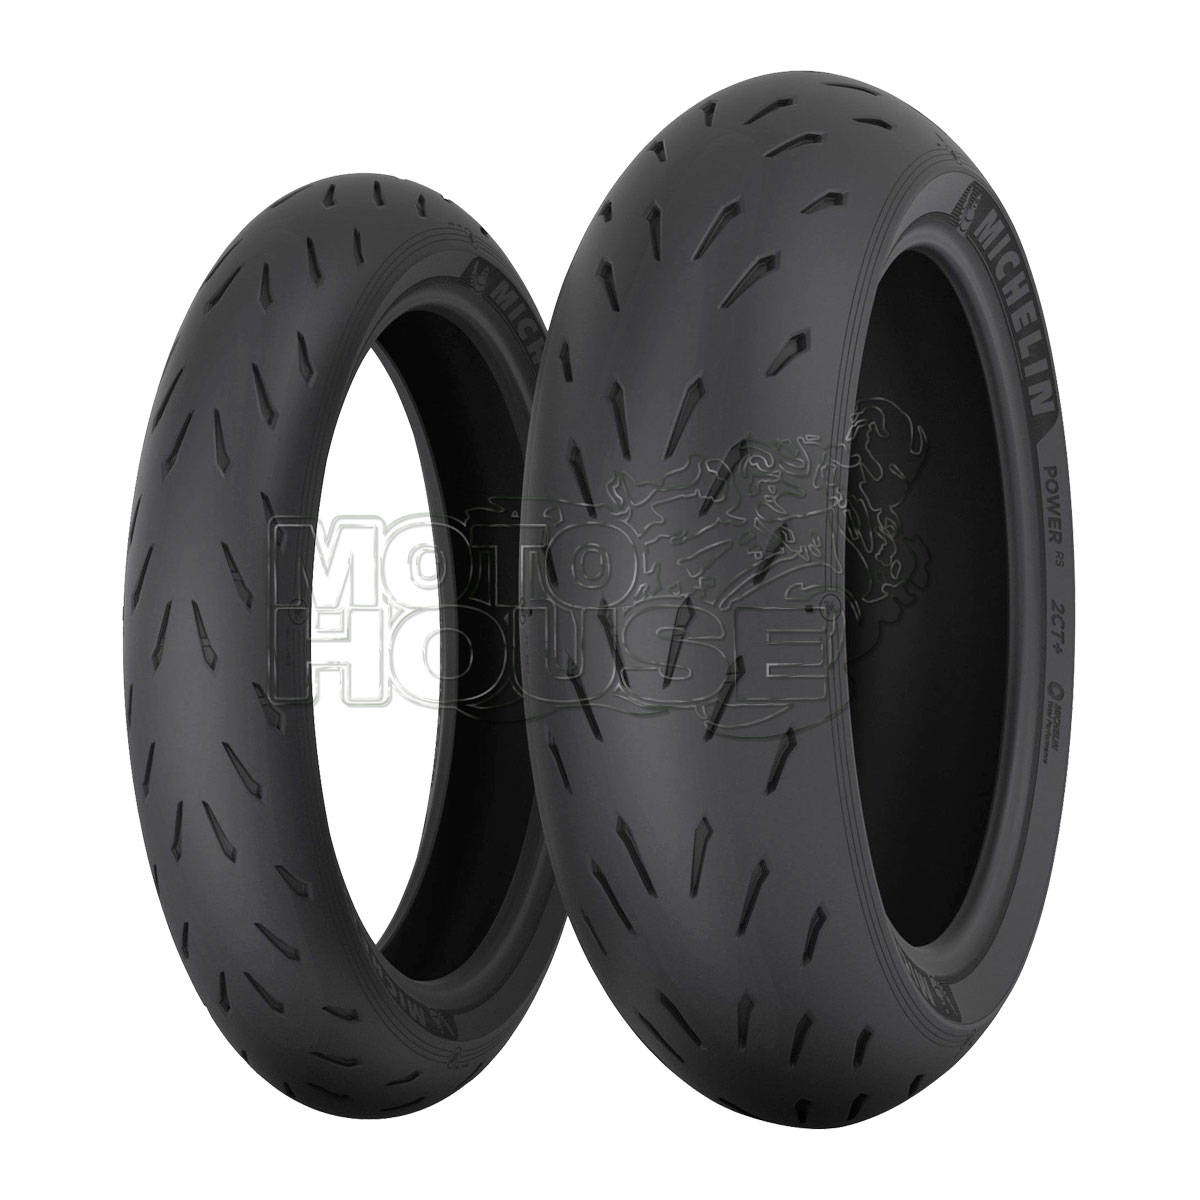 Llanta Para Moto Michelin Power Rs 120/70-17 58w